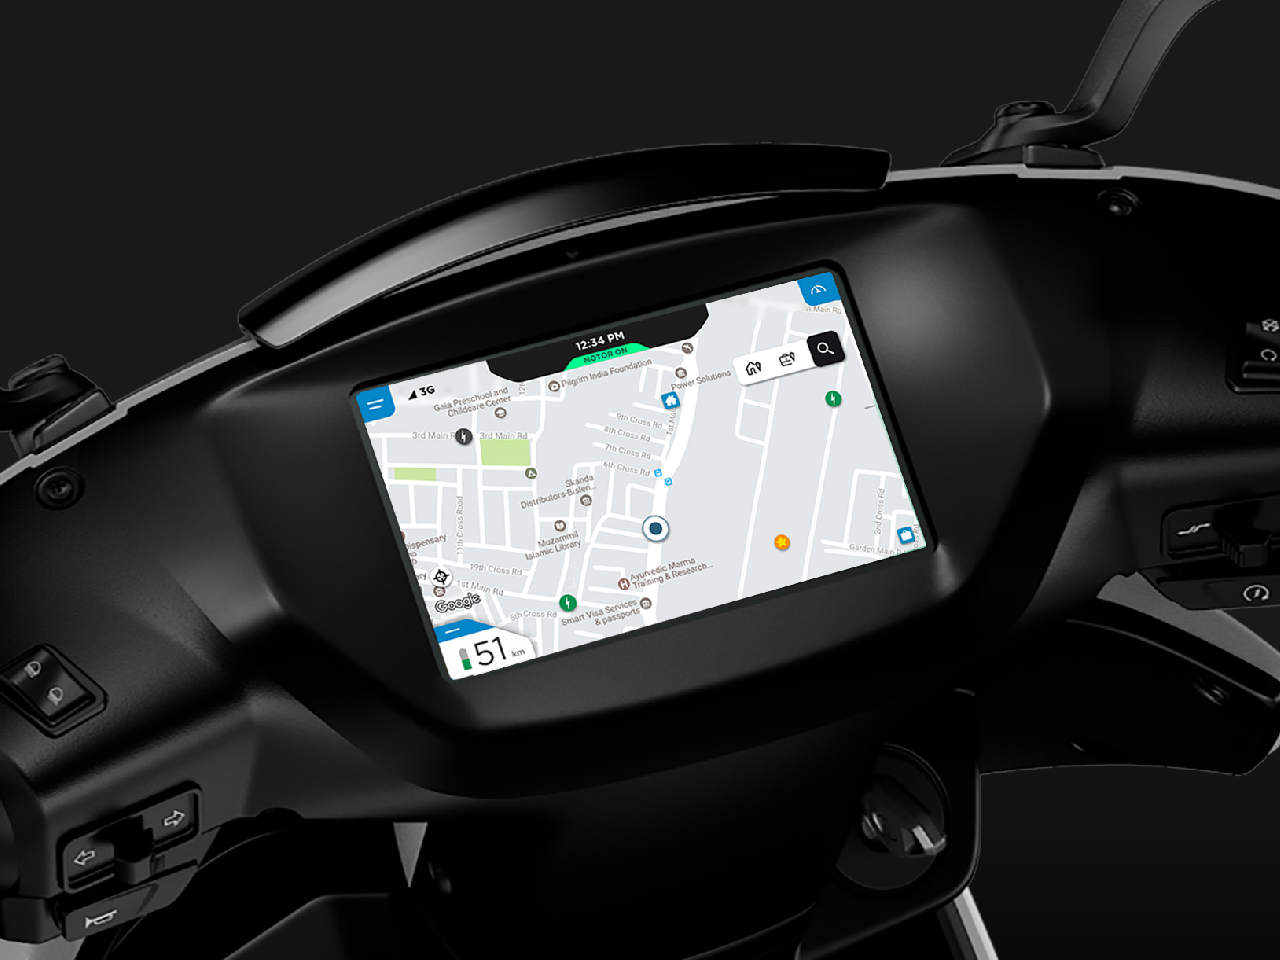 The navigation map display on Ather's scooter